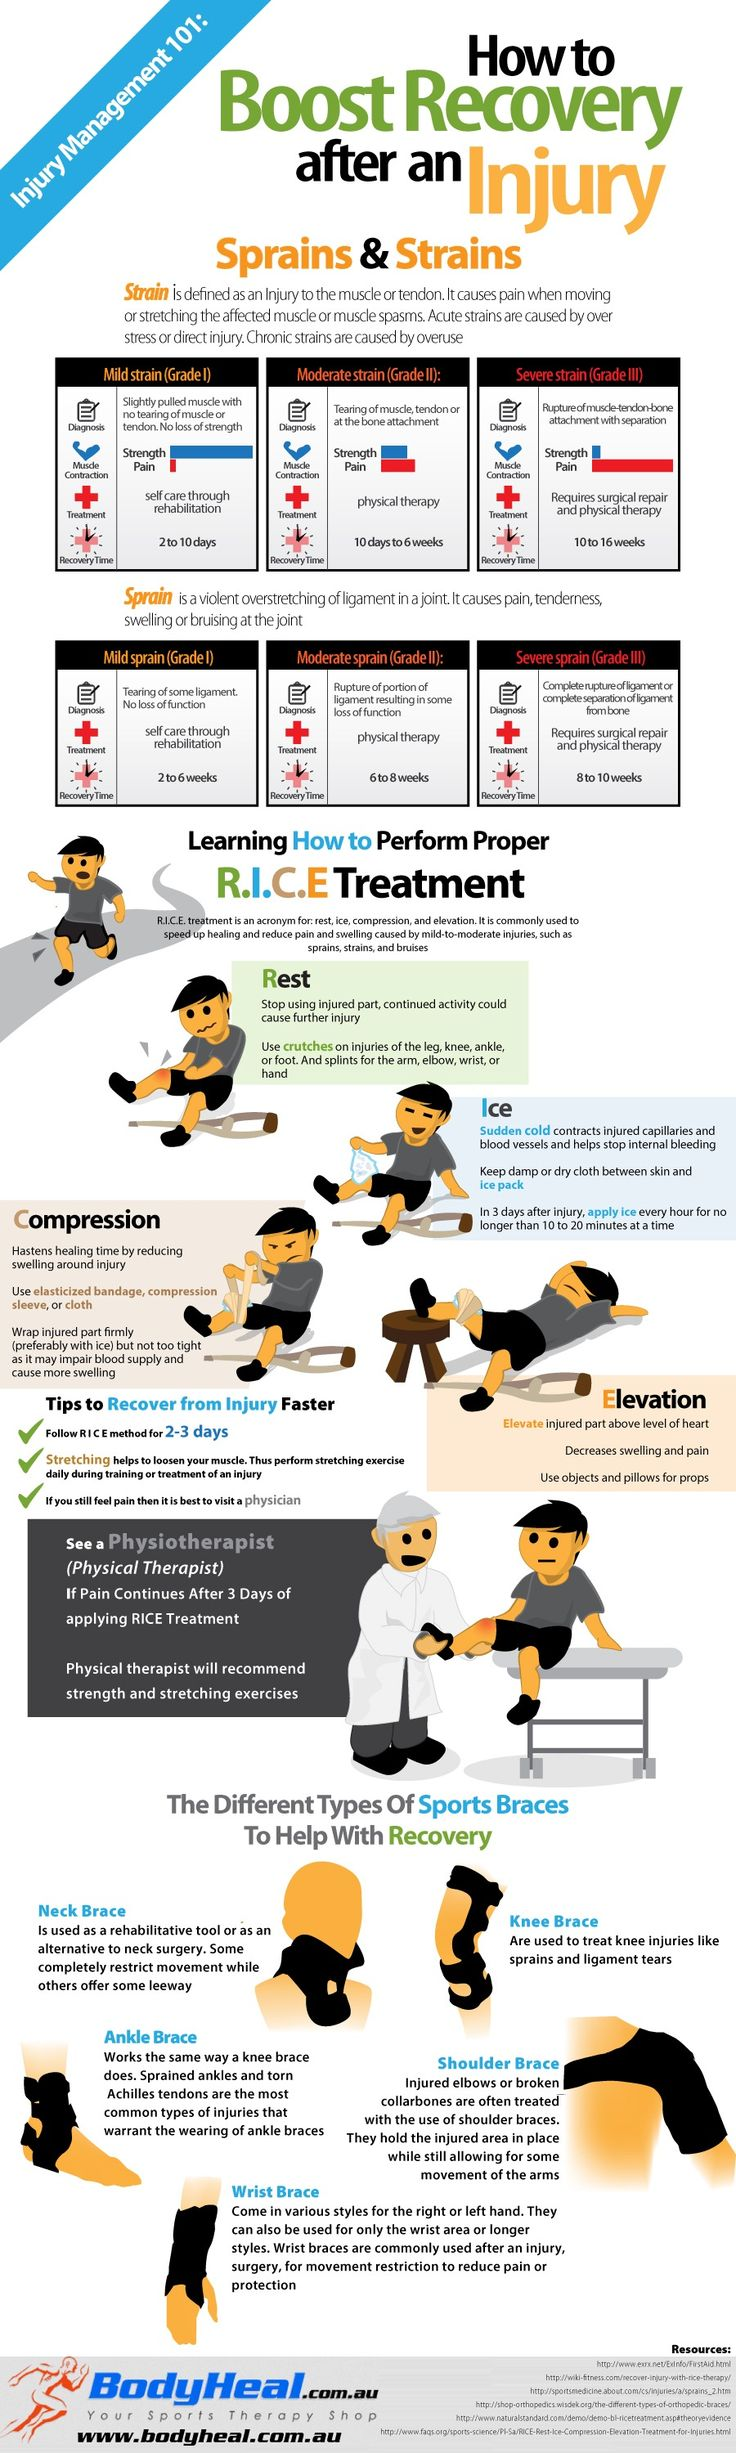 The infographic shows the basics of how to recover from a sports injury using R.I.C.E. (Rest, Ice, Compression, Elevation)